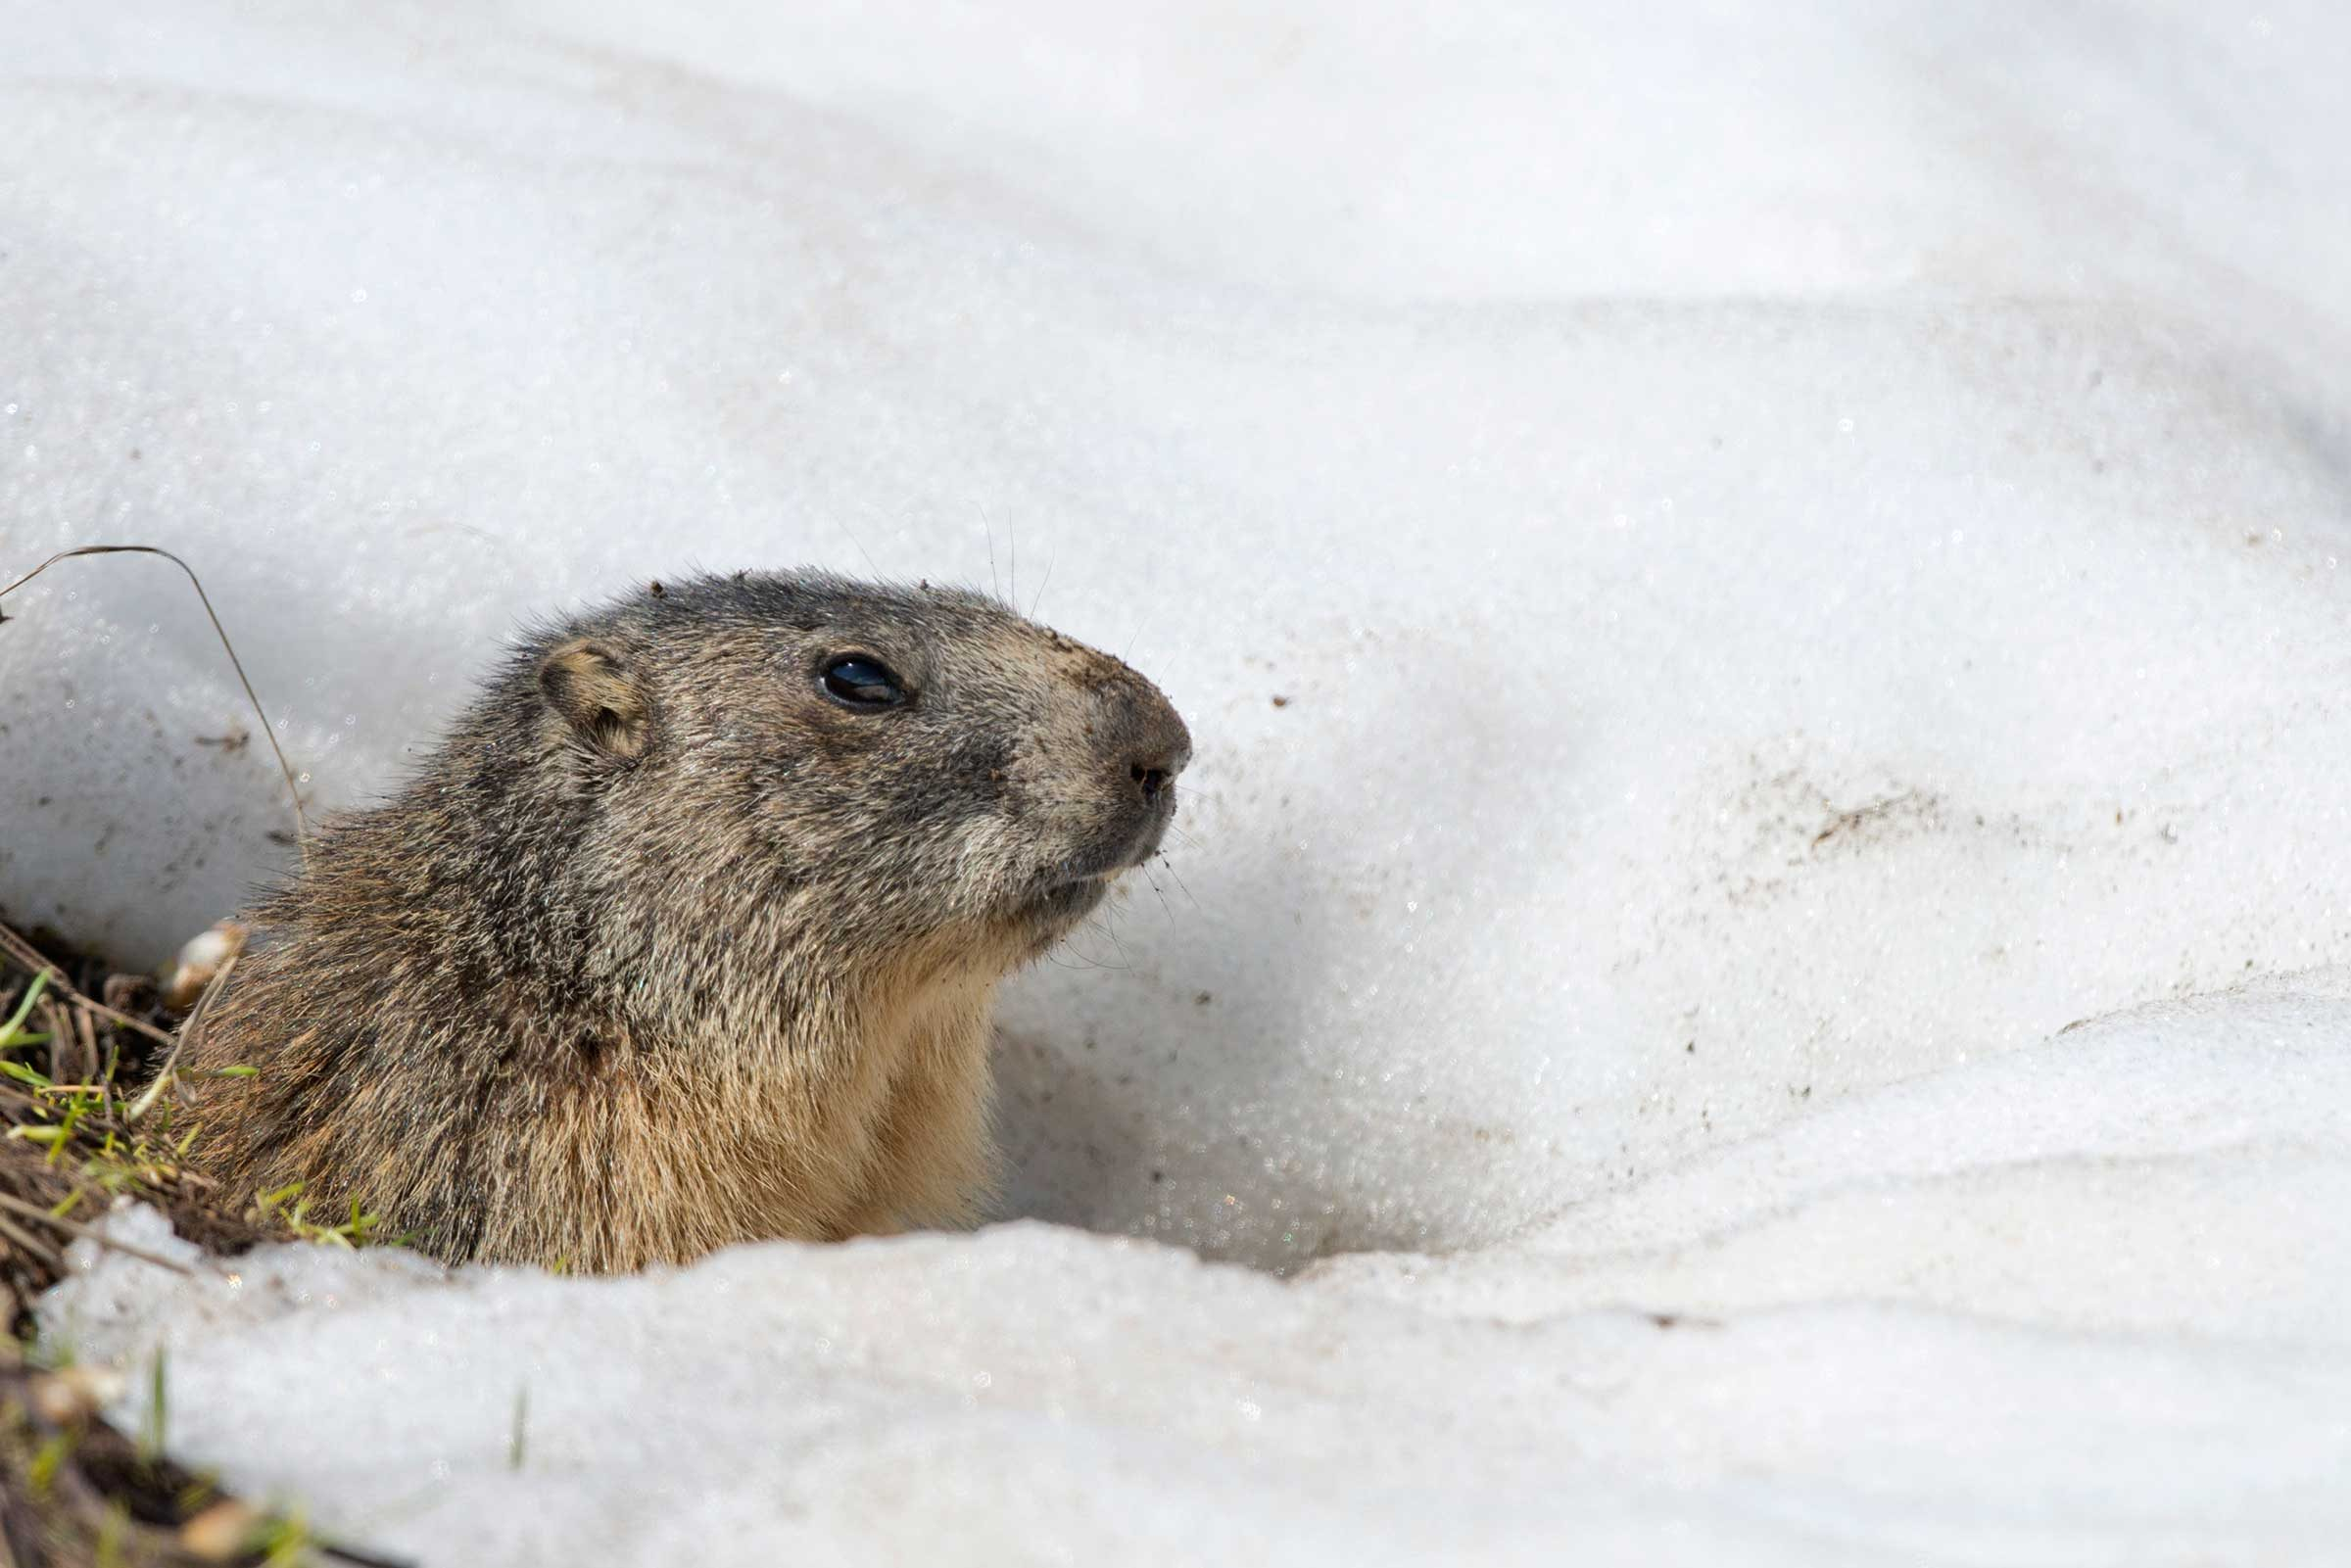 Adorable Groundhog Facts You Need to Know on Groundhog Day